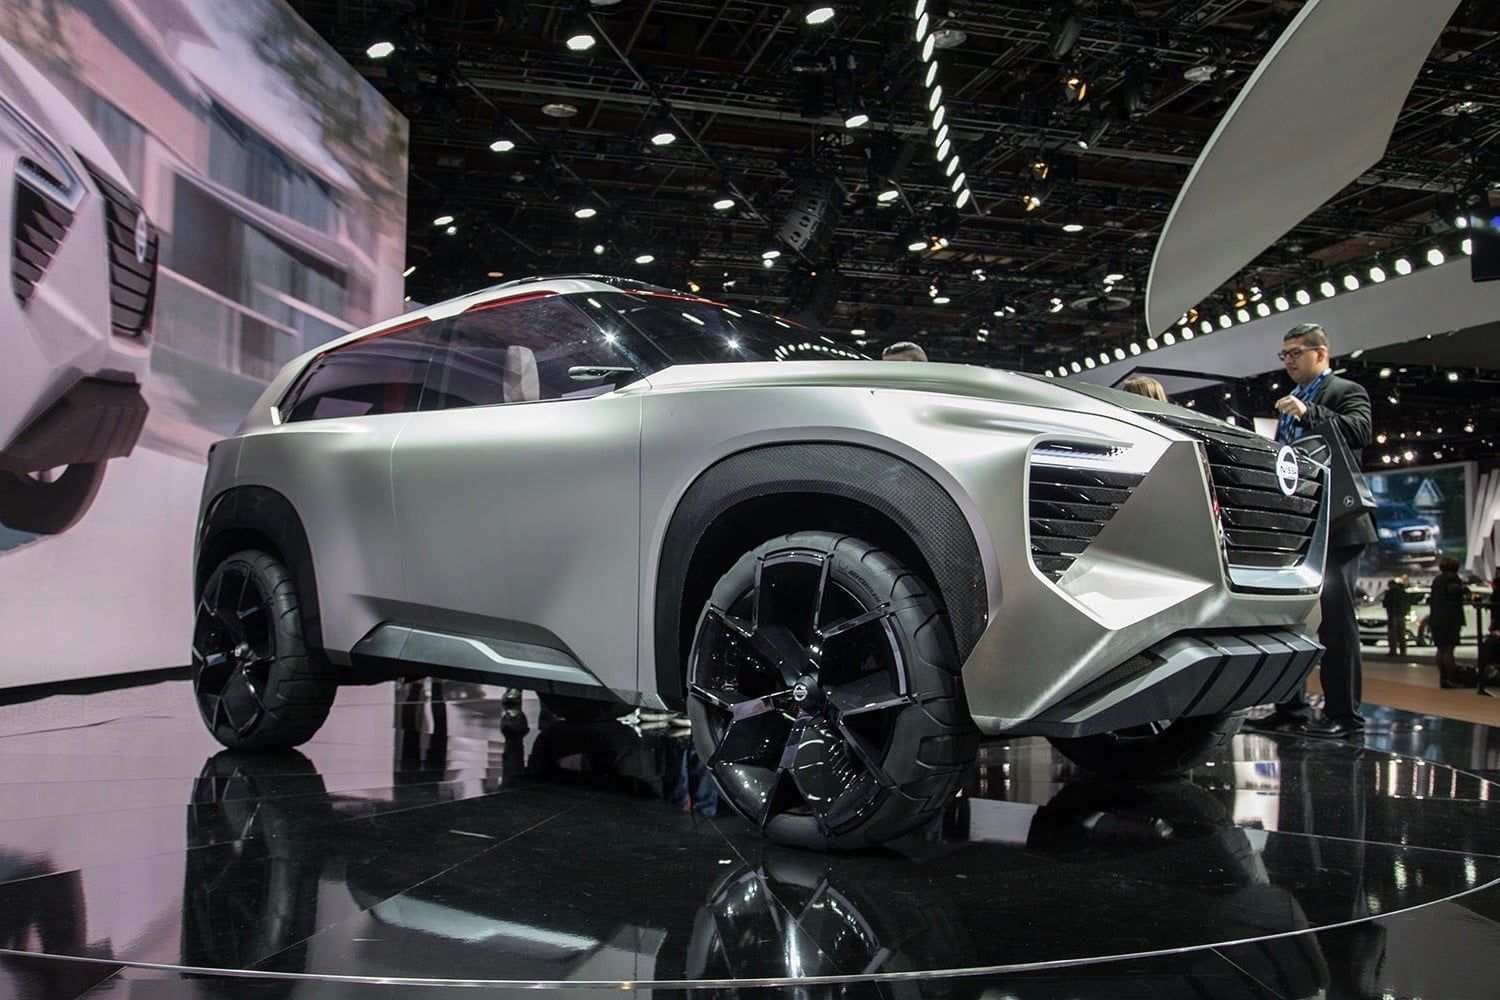 79 Best Review New Nissan Xmotion 2019 Release Date Images by New Nissan Xmotion 2019 Release Date